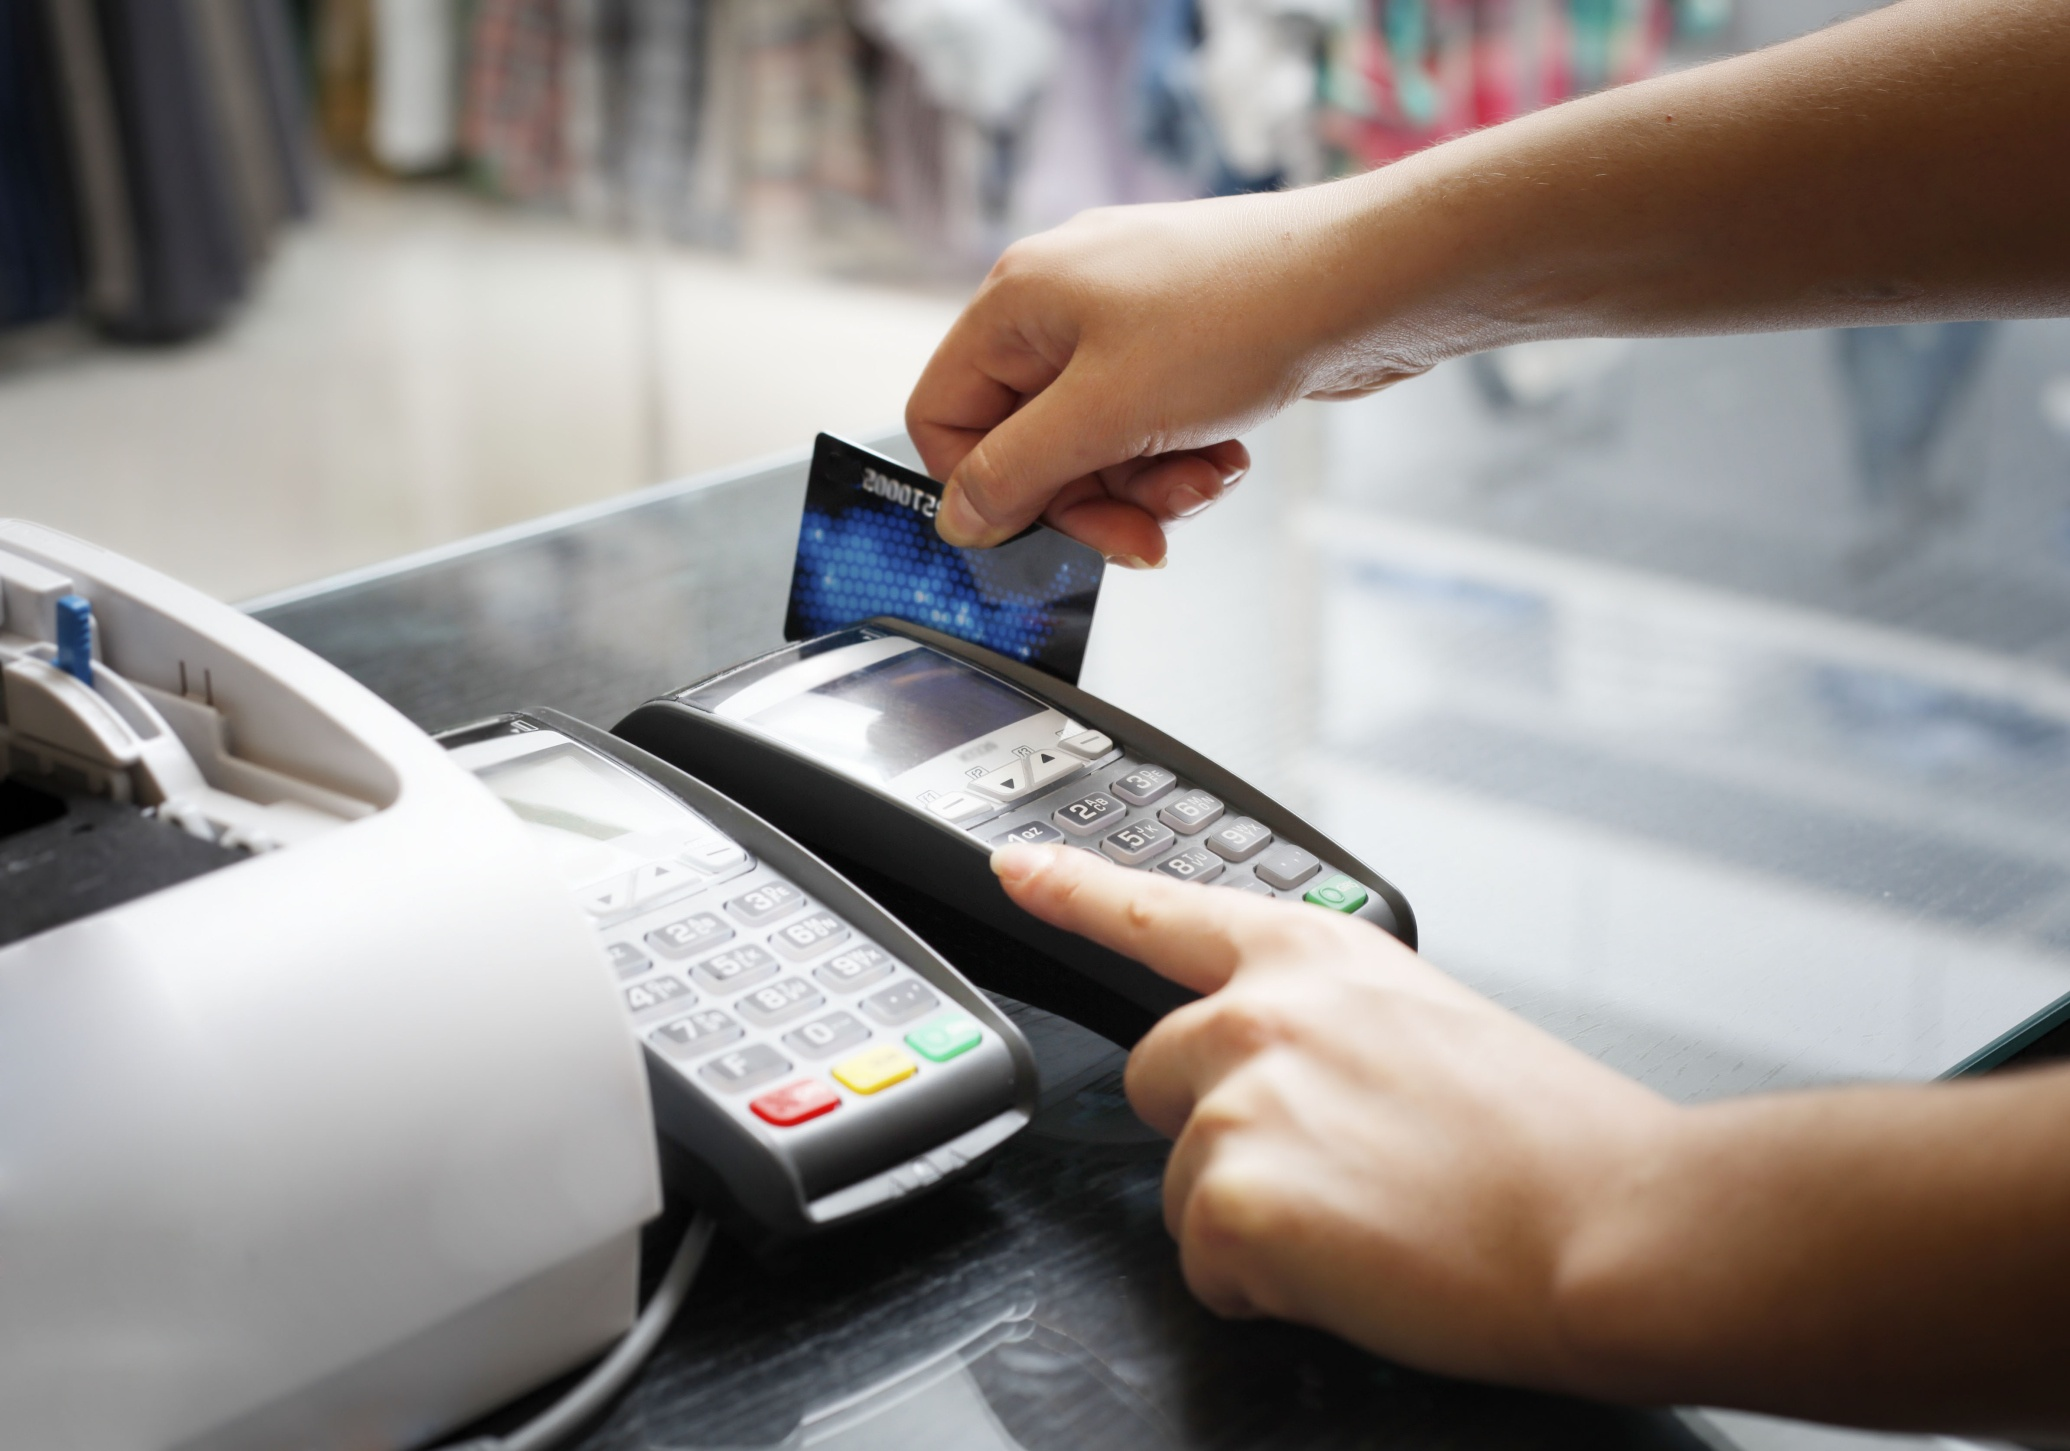 Credit Card Processing 101: What are MCC and SIC codes?